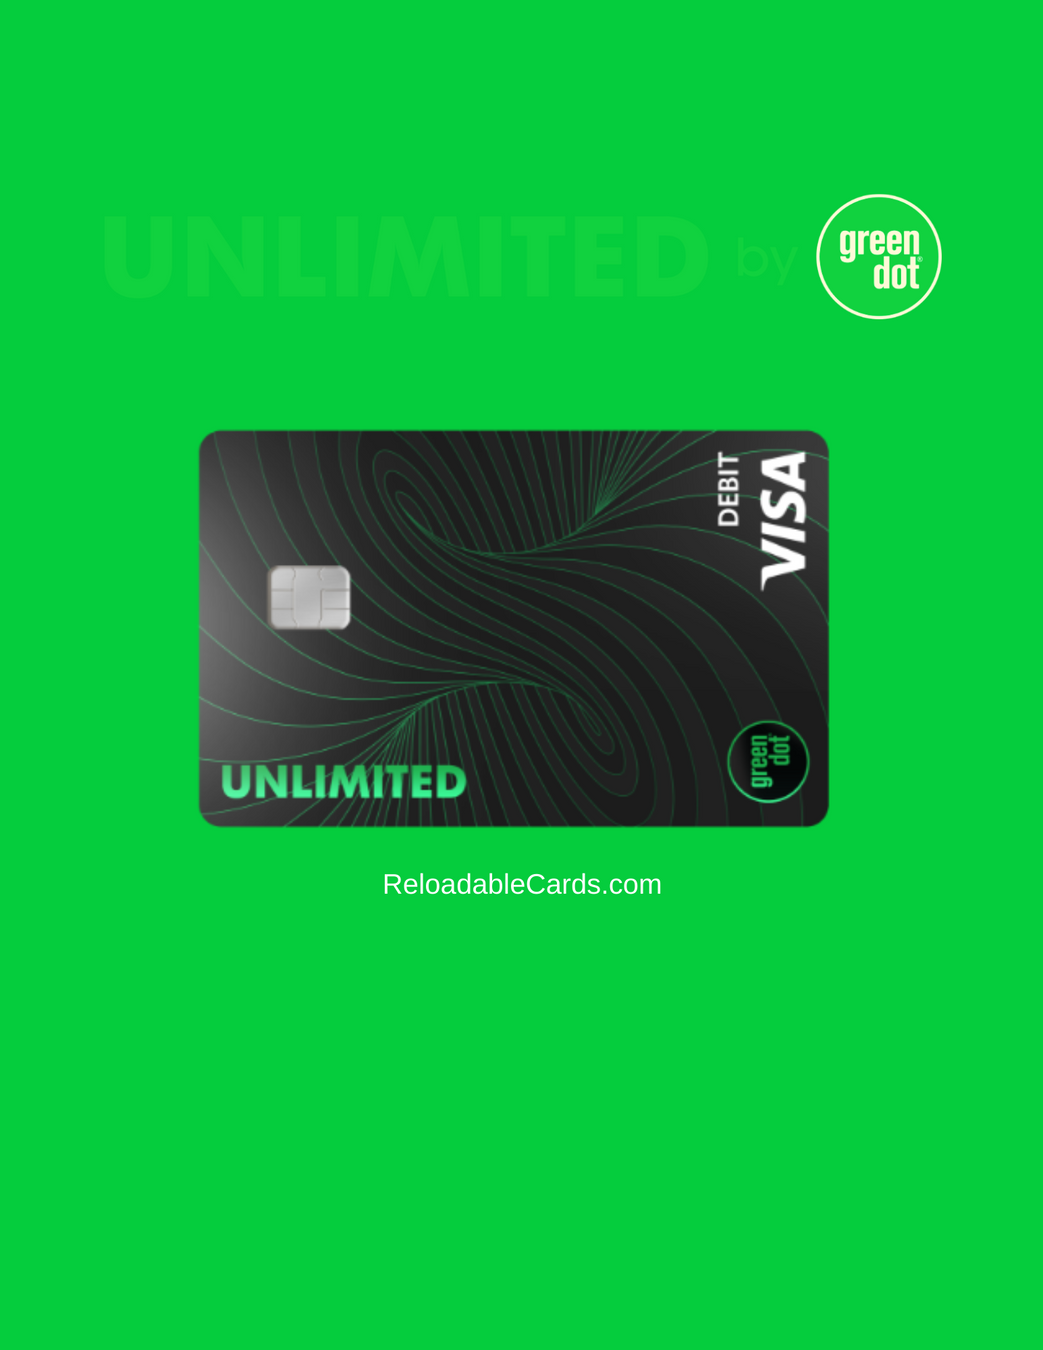 green dot unlimited card